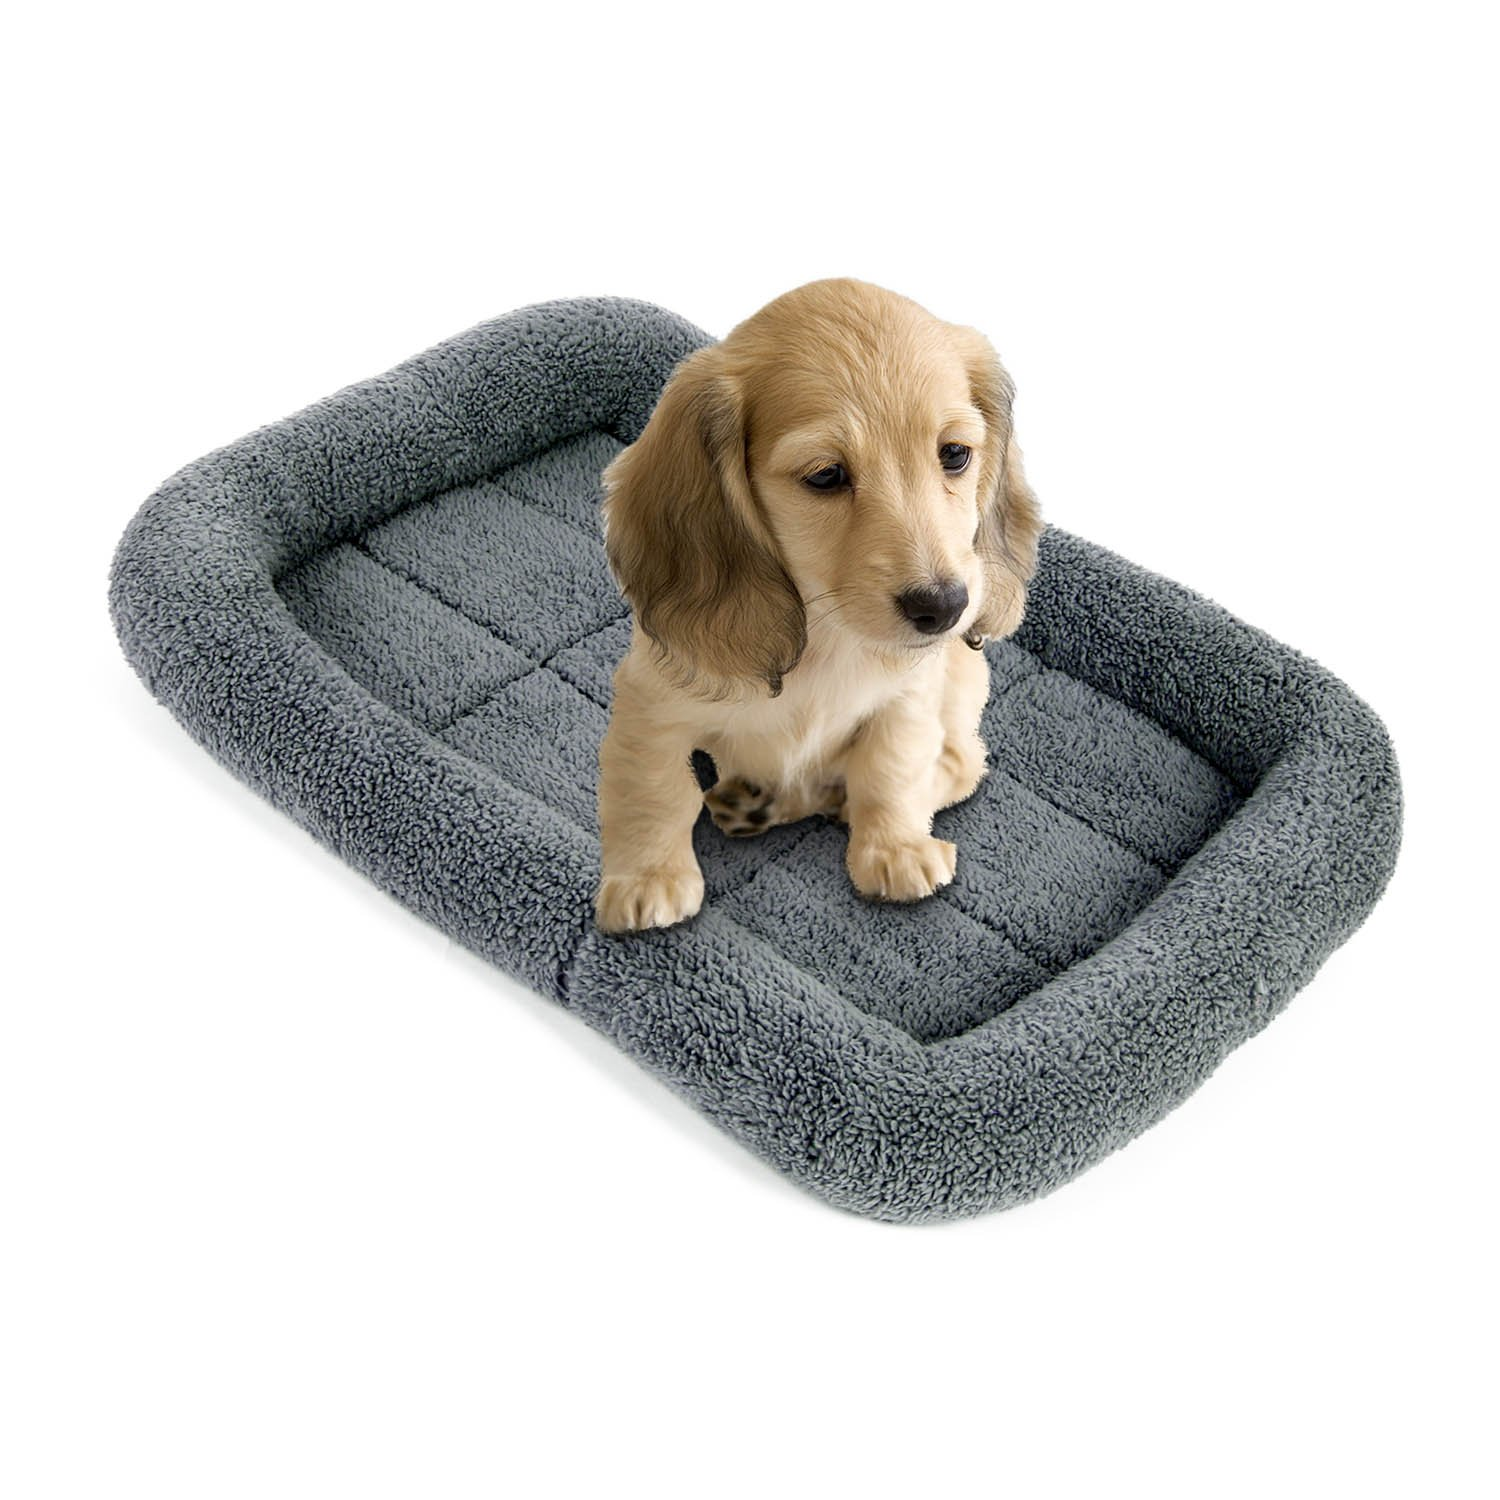 Pecute Pet Cushion with Summer Sleeping Mat for Dog Comfortable Coral Velvet Pillow Crate Bed (19.6*14.5INCH)